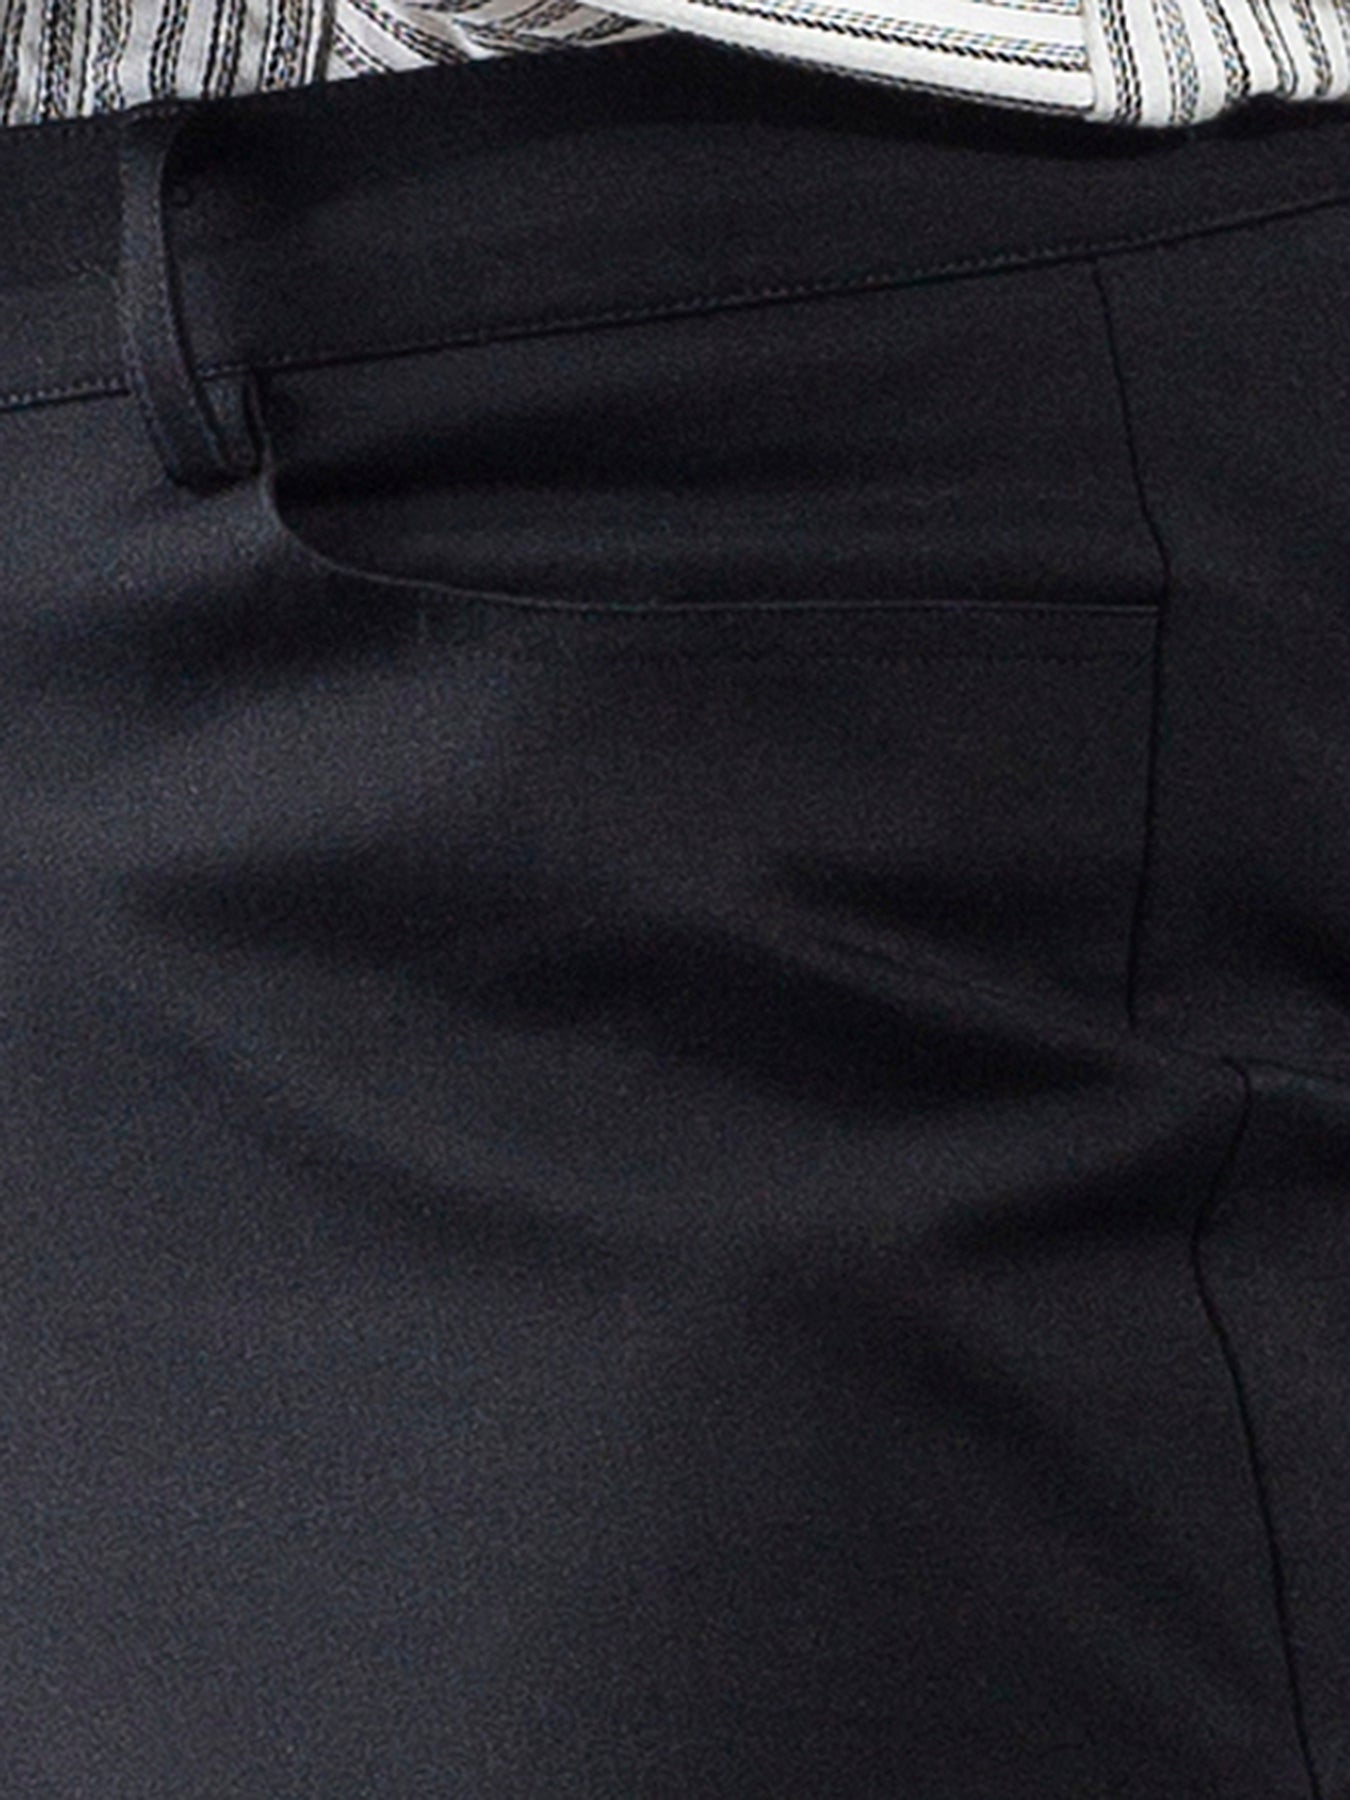 Essential Comfort Trousers - Black